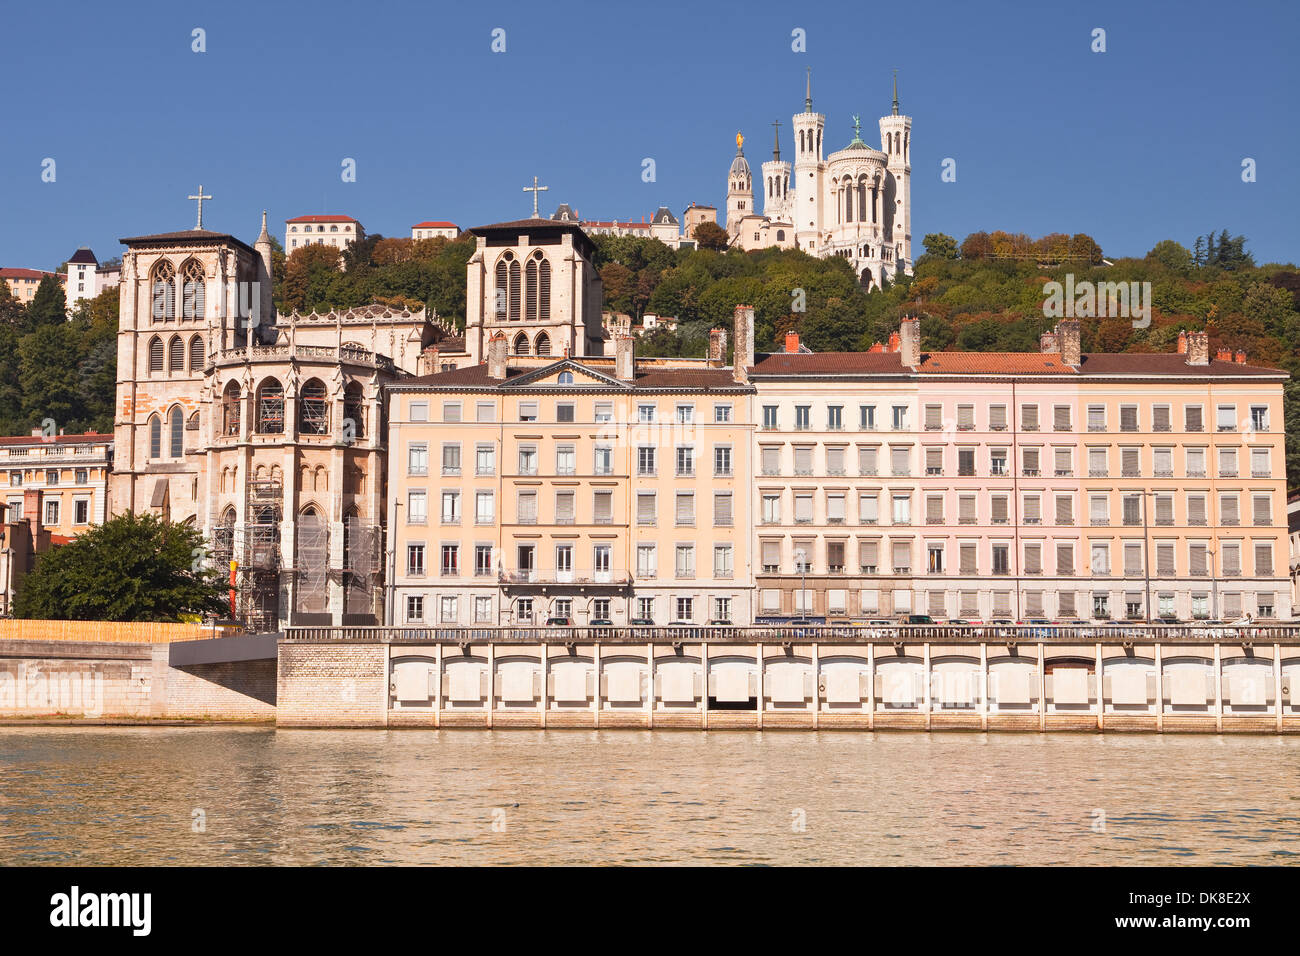 Vieux Lyon and the river Saone. Notre Dame de Fourviere can be seen on the hill. - Stock Image